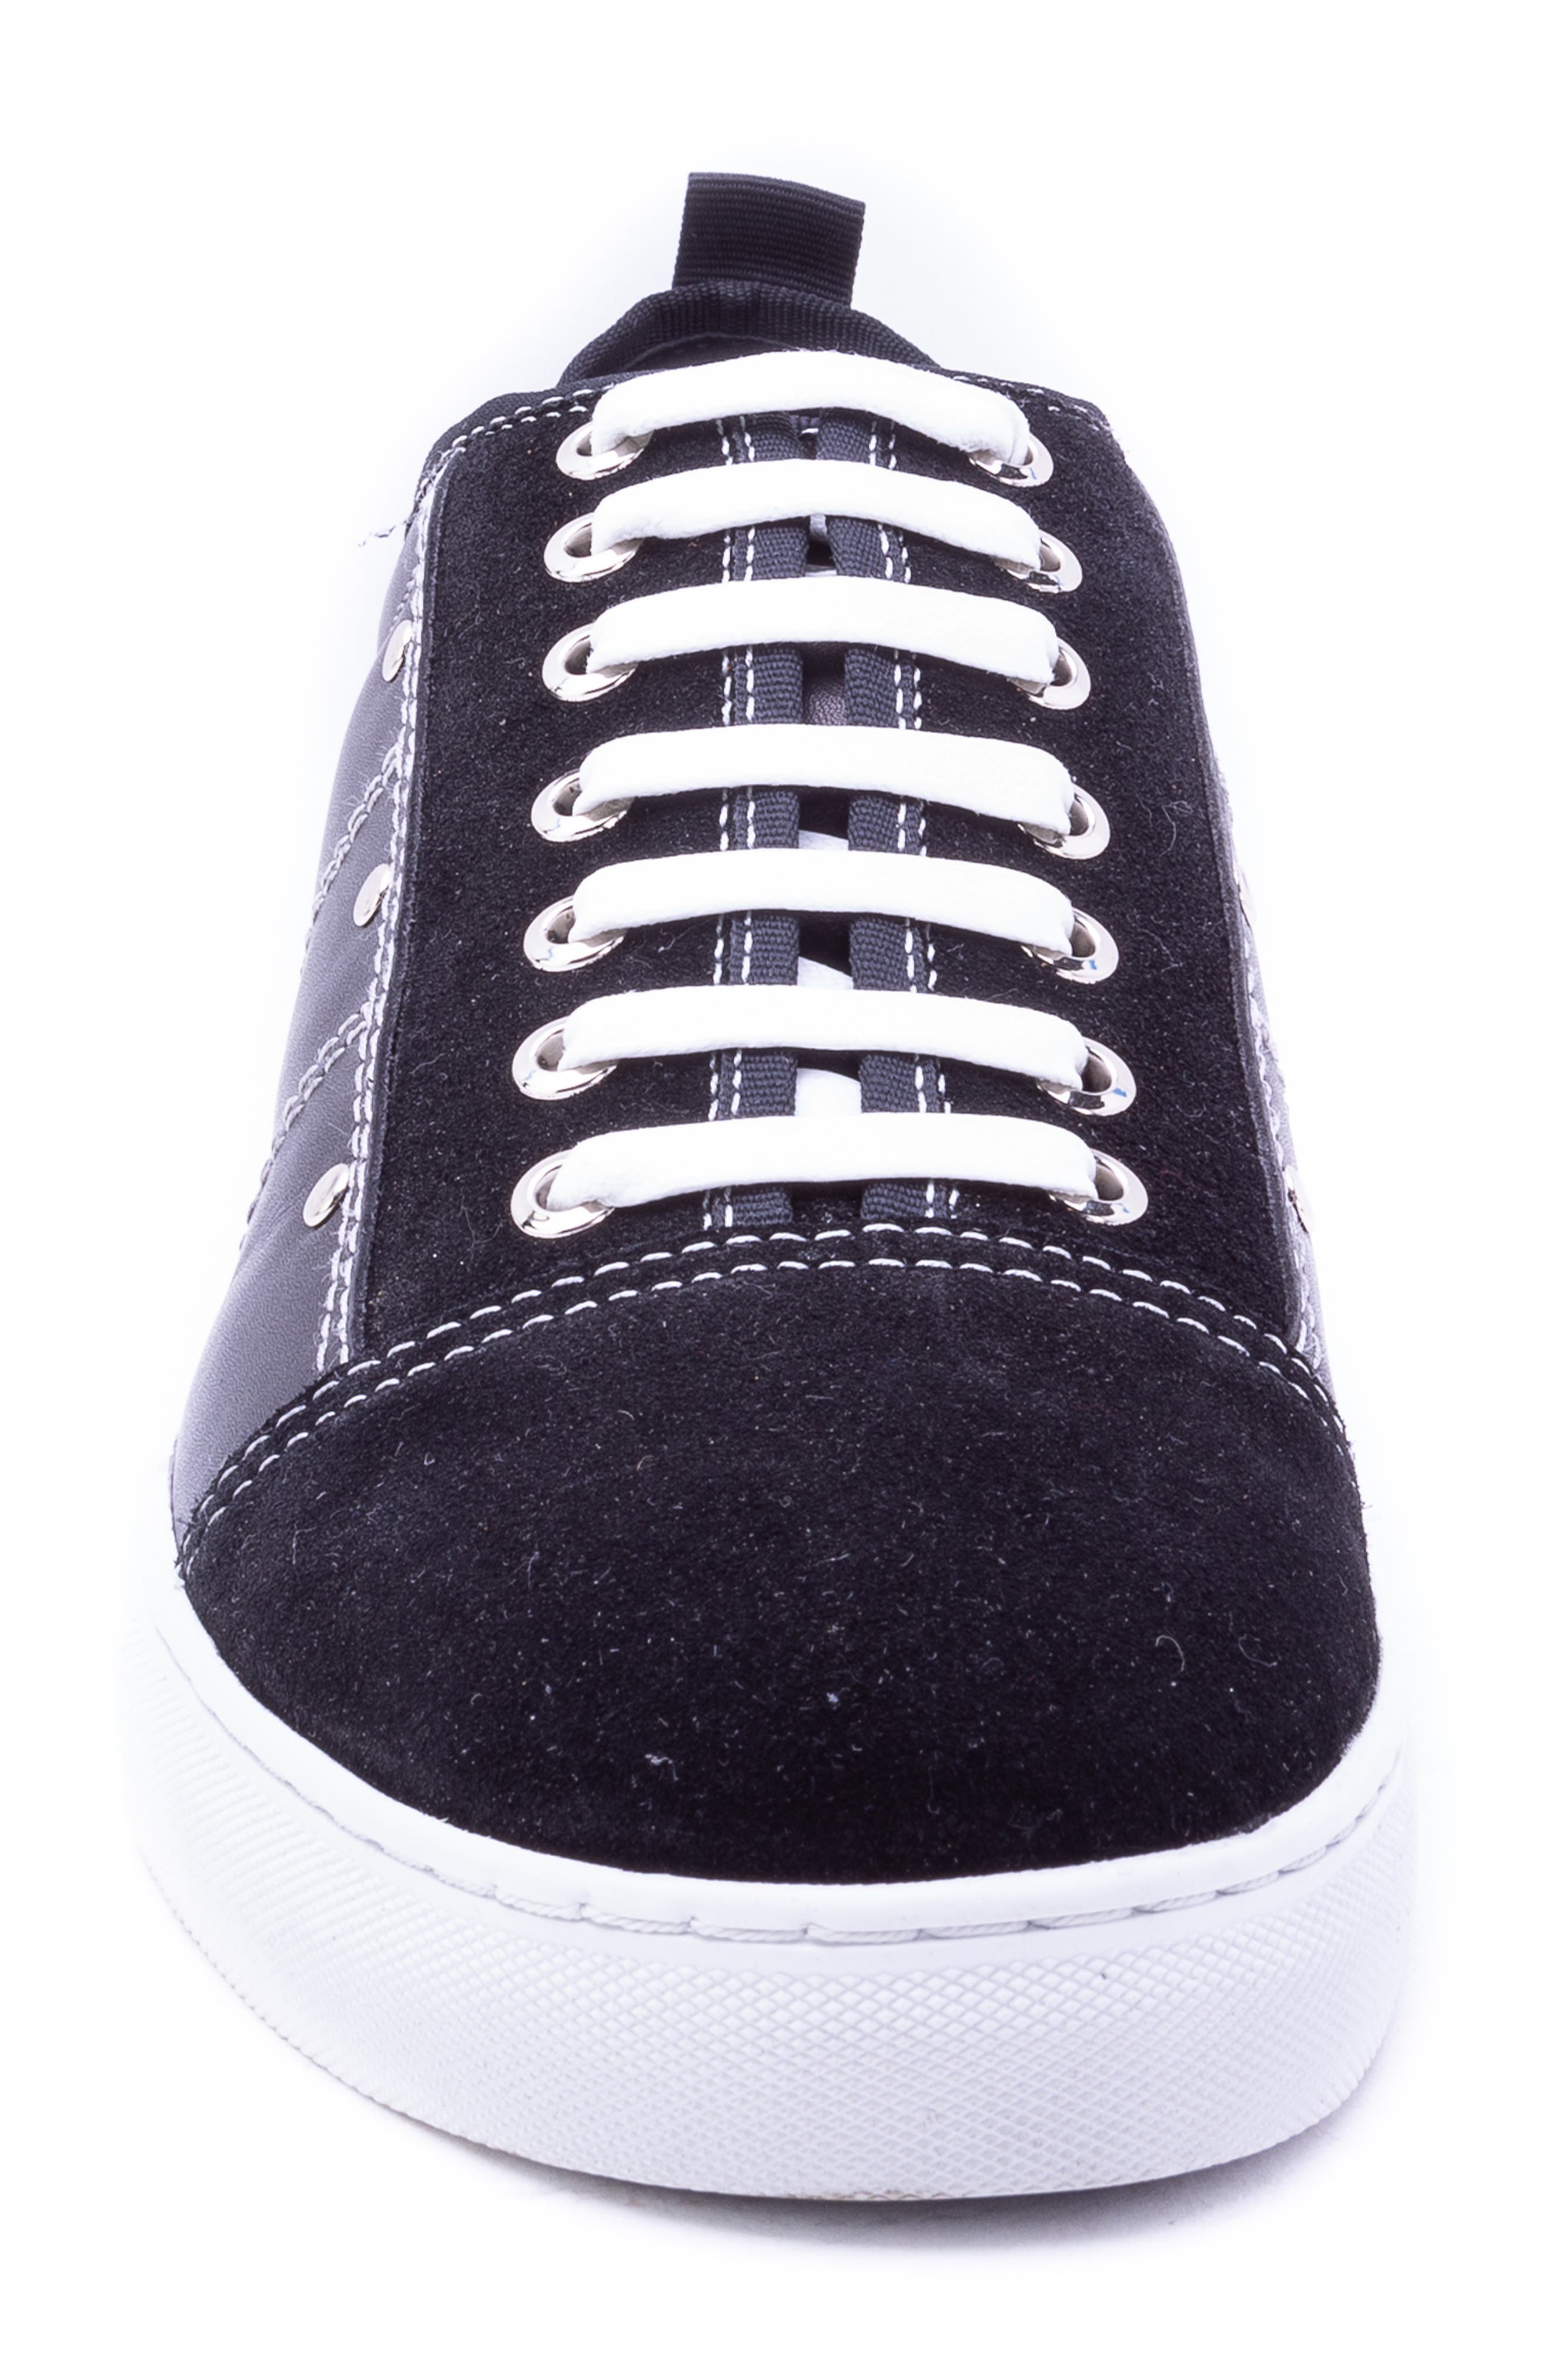 Severn Studded Low Top Sneaker,                             Alternate thumbnail 4, color,                             BLACK SUEDE/ LEATHER